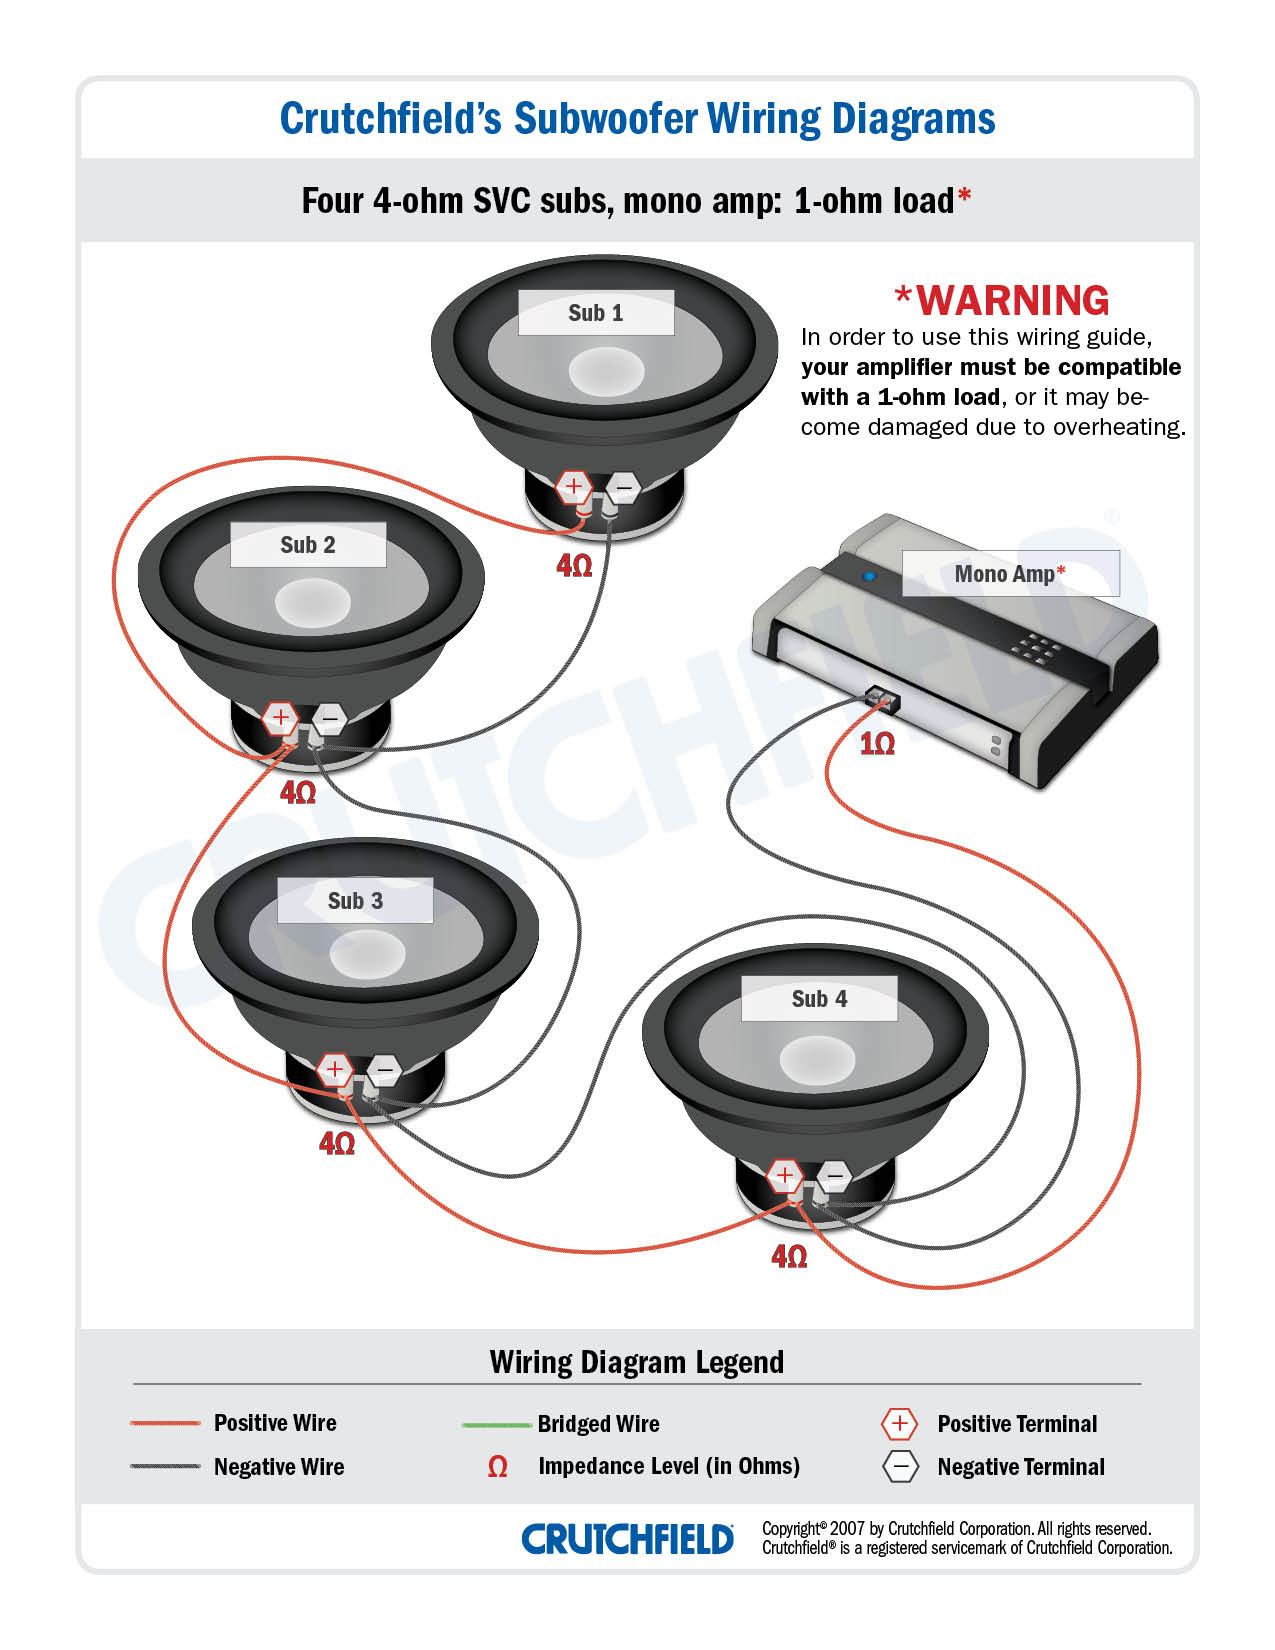 Subwoofer Wiring Diagrams — How To Wire Your Subs - 4 Ohm Wiring Diagram